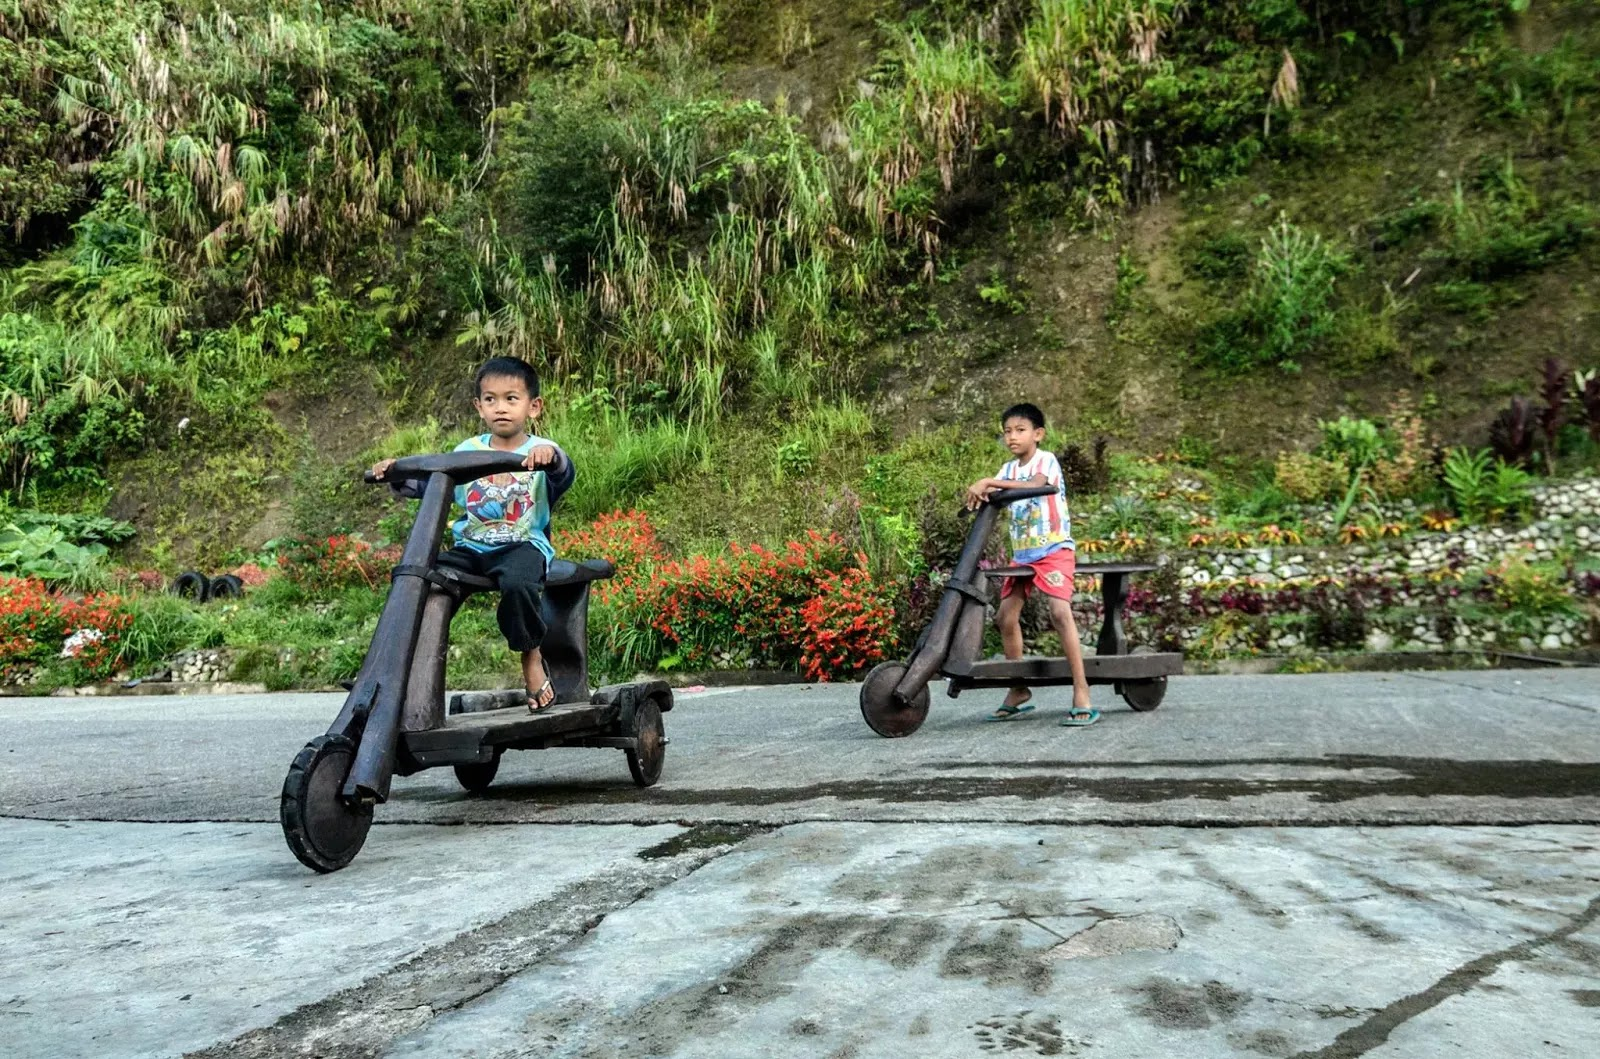 Banaue Ifugao Young Children Wooden Bike Riders Cordillera Administrative Region Philippines